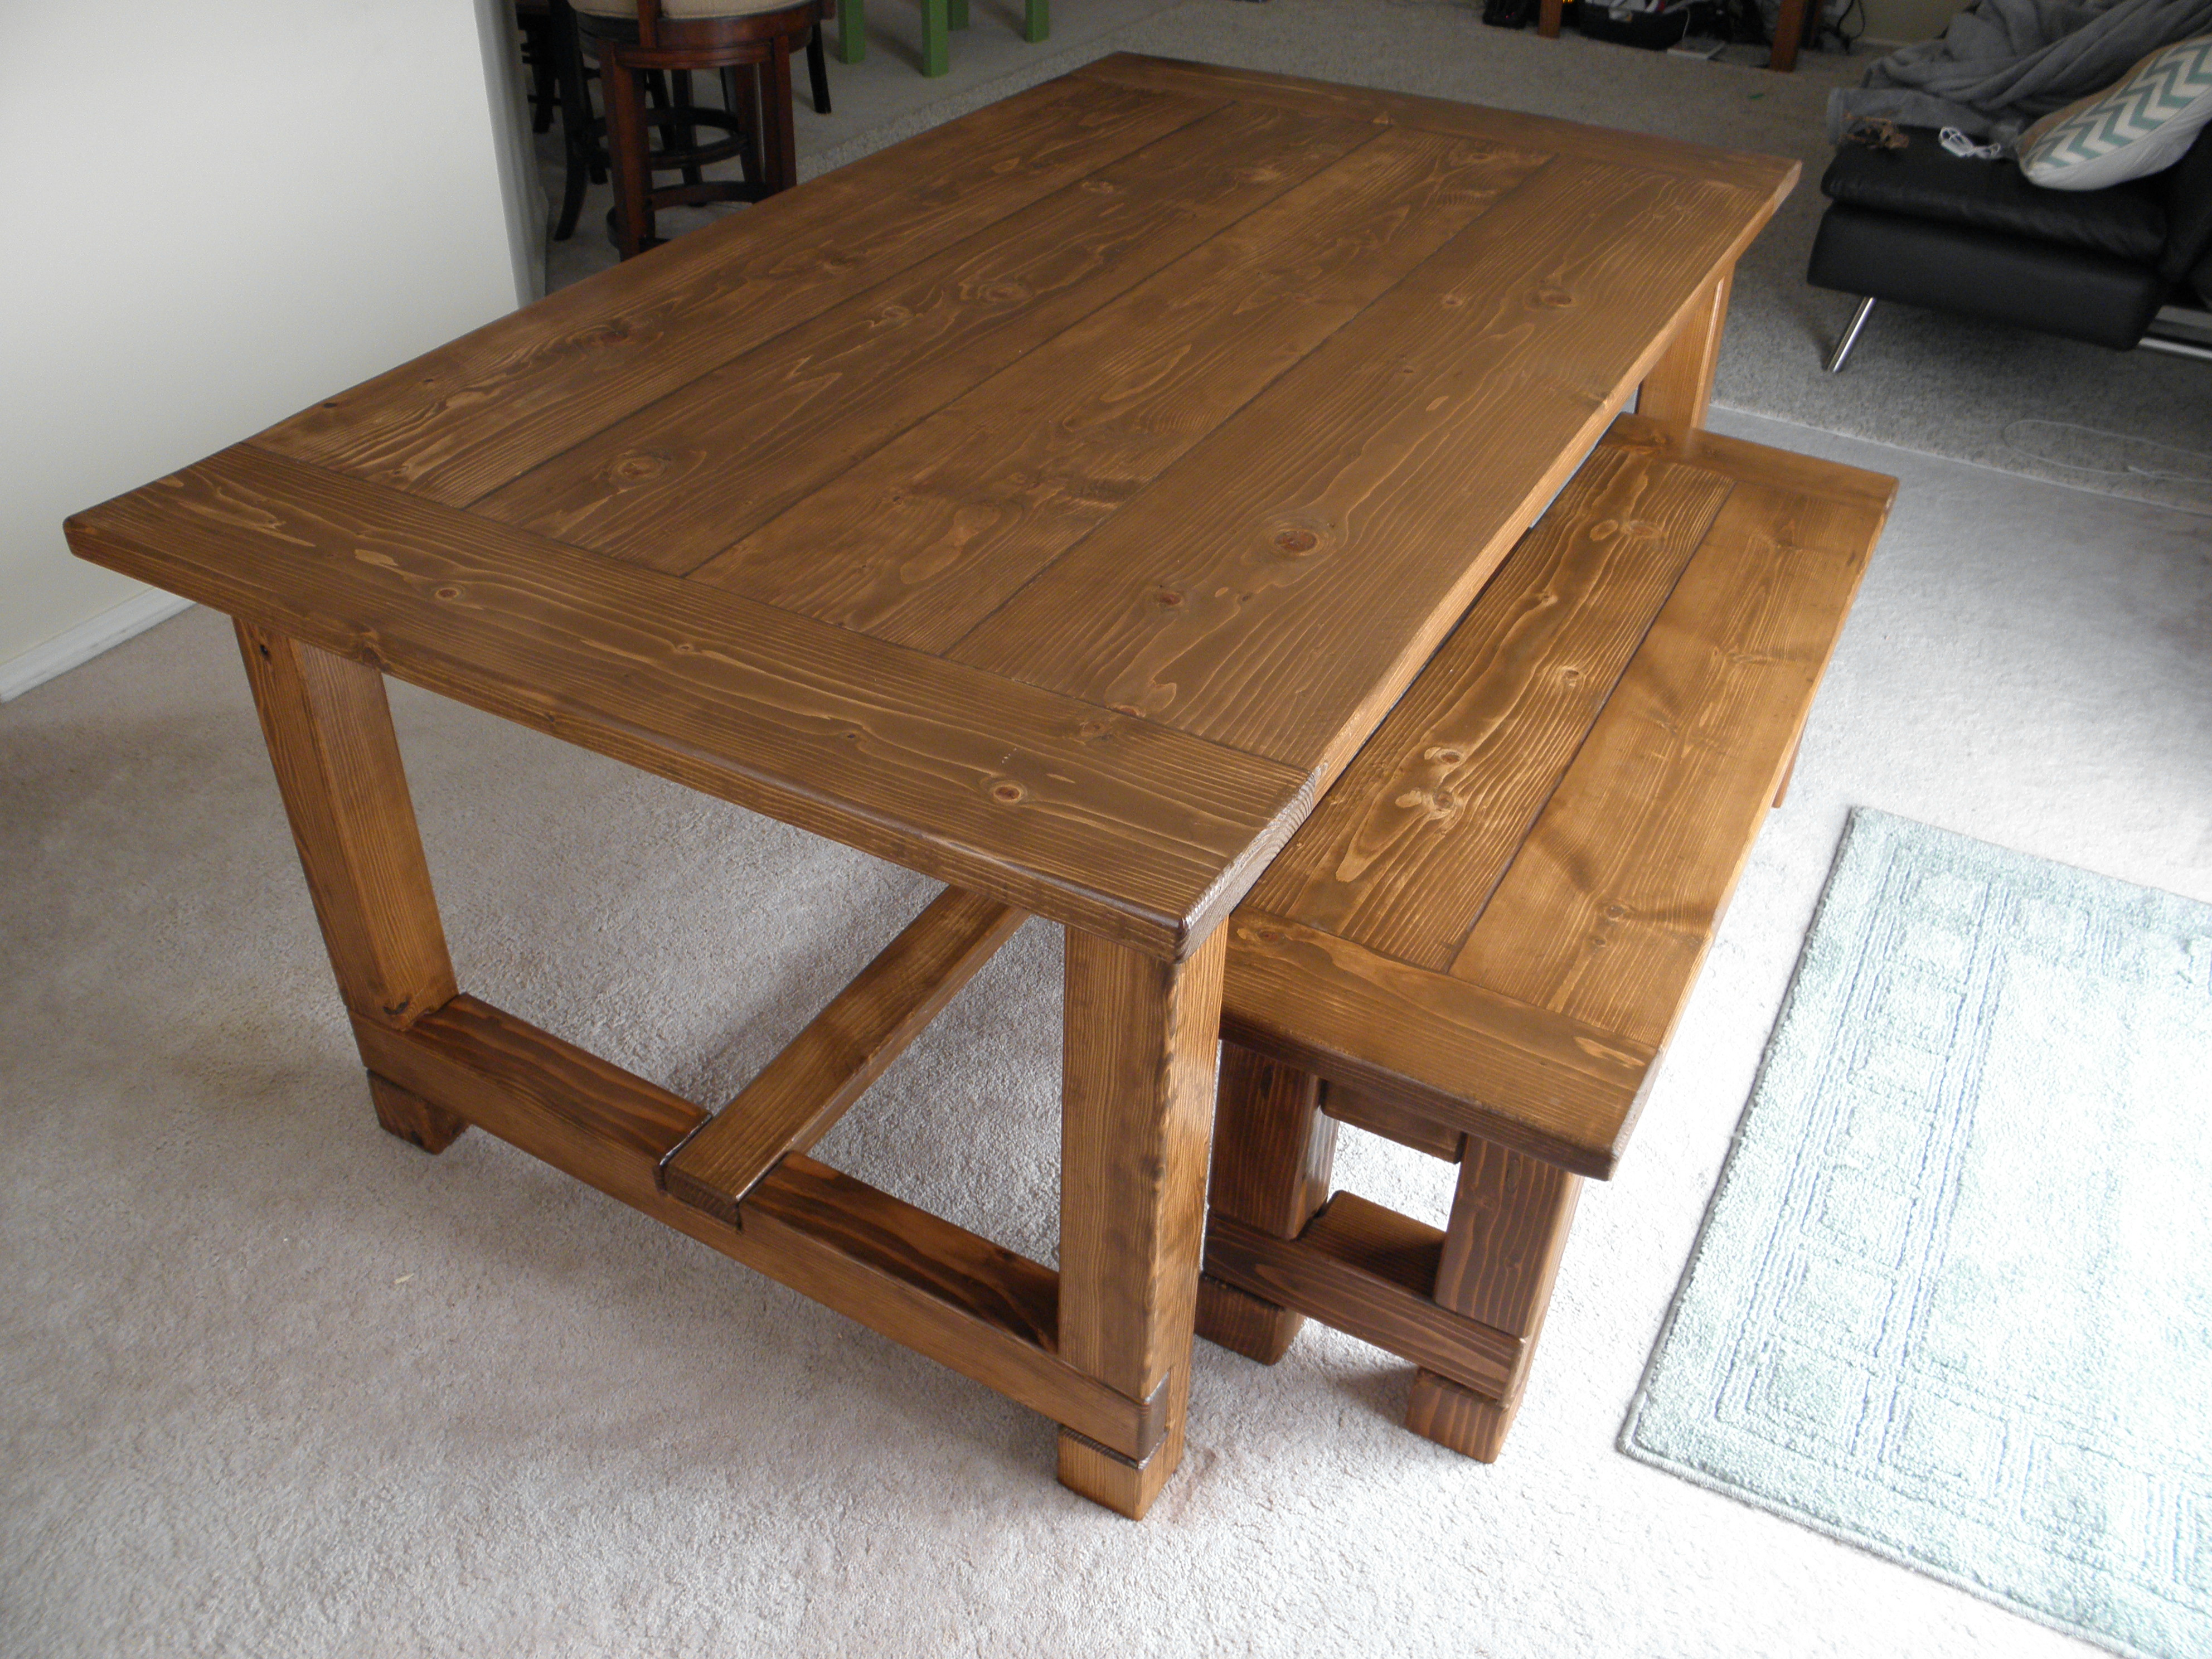 Farmhouse Table, Bench, And Extensions - DIY